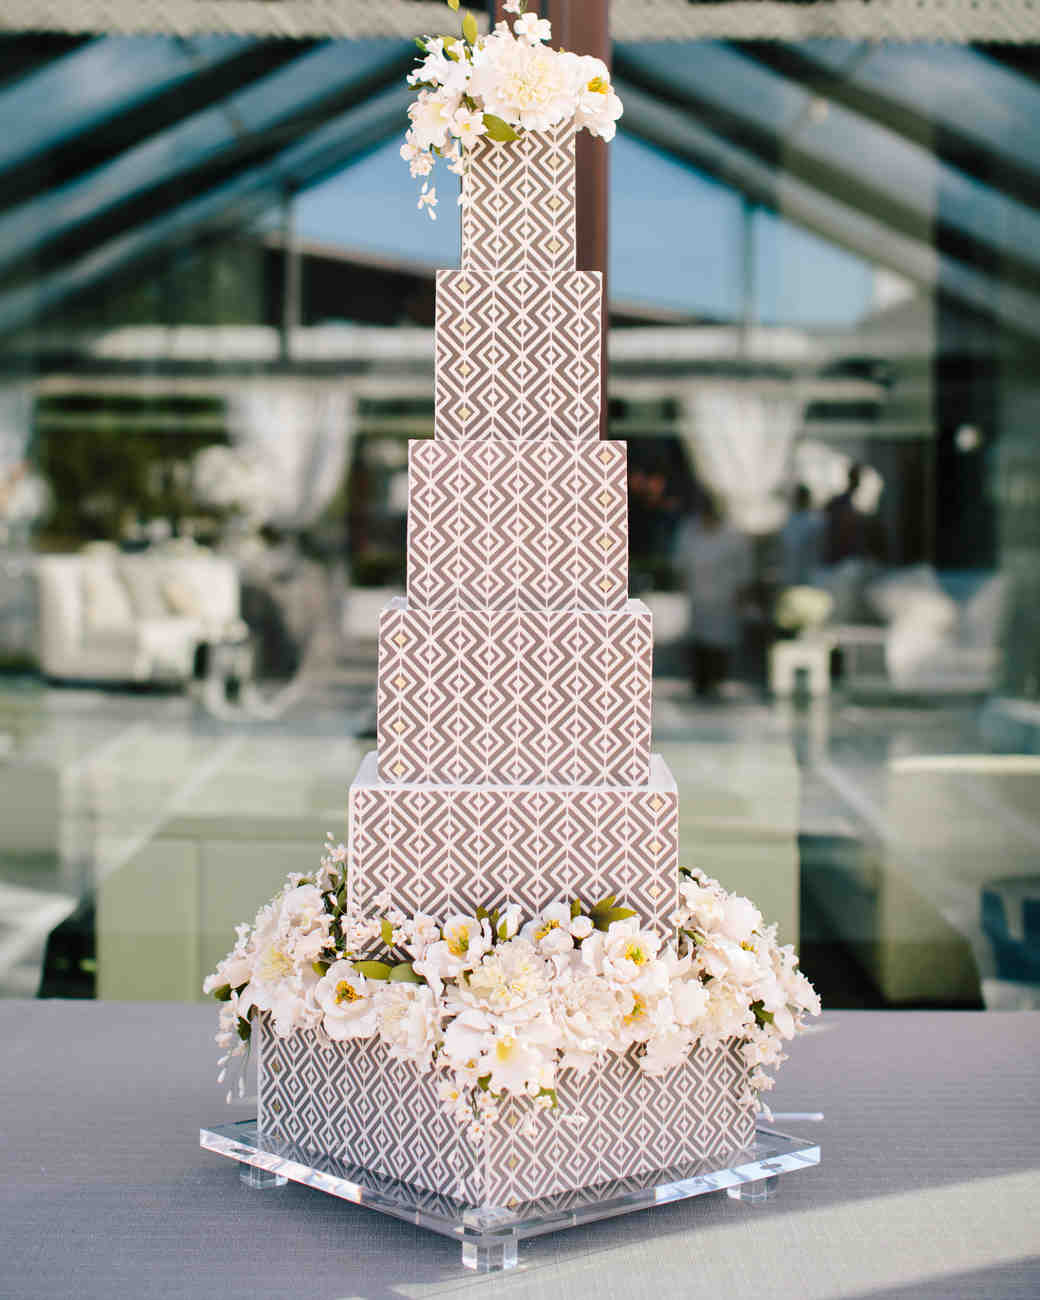 20 unique wedding cake shapes contemporary couples should consider 20 unique wedding cake shapes contemporary couples should consider martha stewart weddings junglespirit Gallery